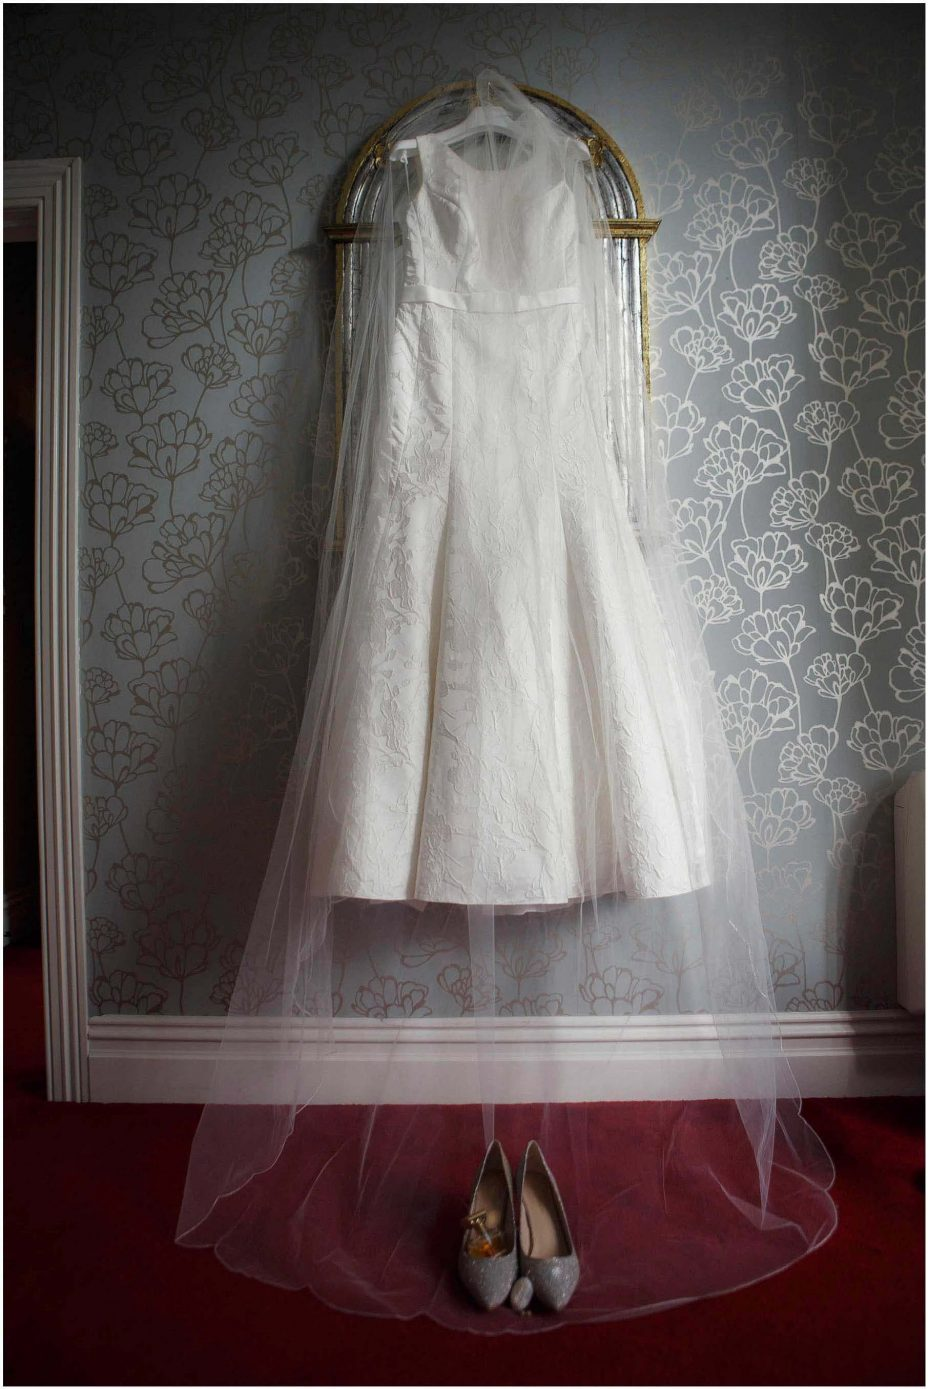 Classical white wedding dress and veil hanging from antique mirror at Mount Eden Villa.